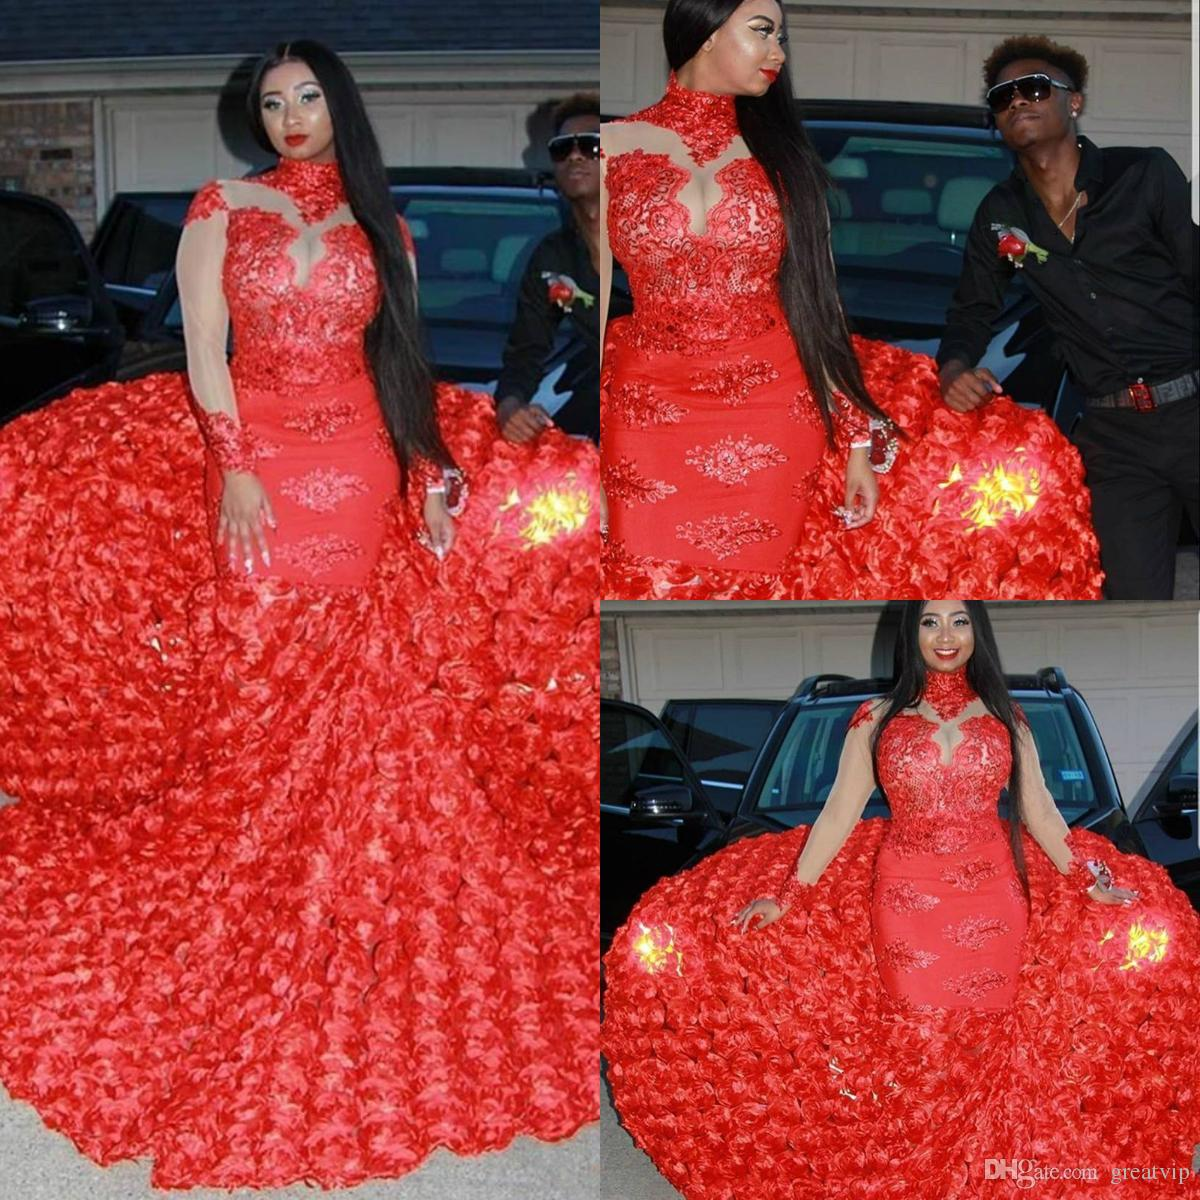 Red High Neck Mermaid Prom Dresses Black Girls African Long Sleeves Petal Flowers Rose Ruffle Evening Gowns Plus Size Special Occasion Dress